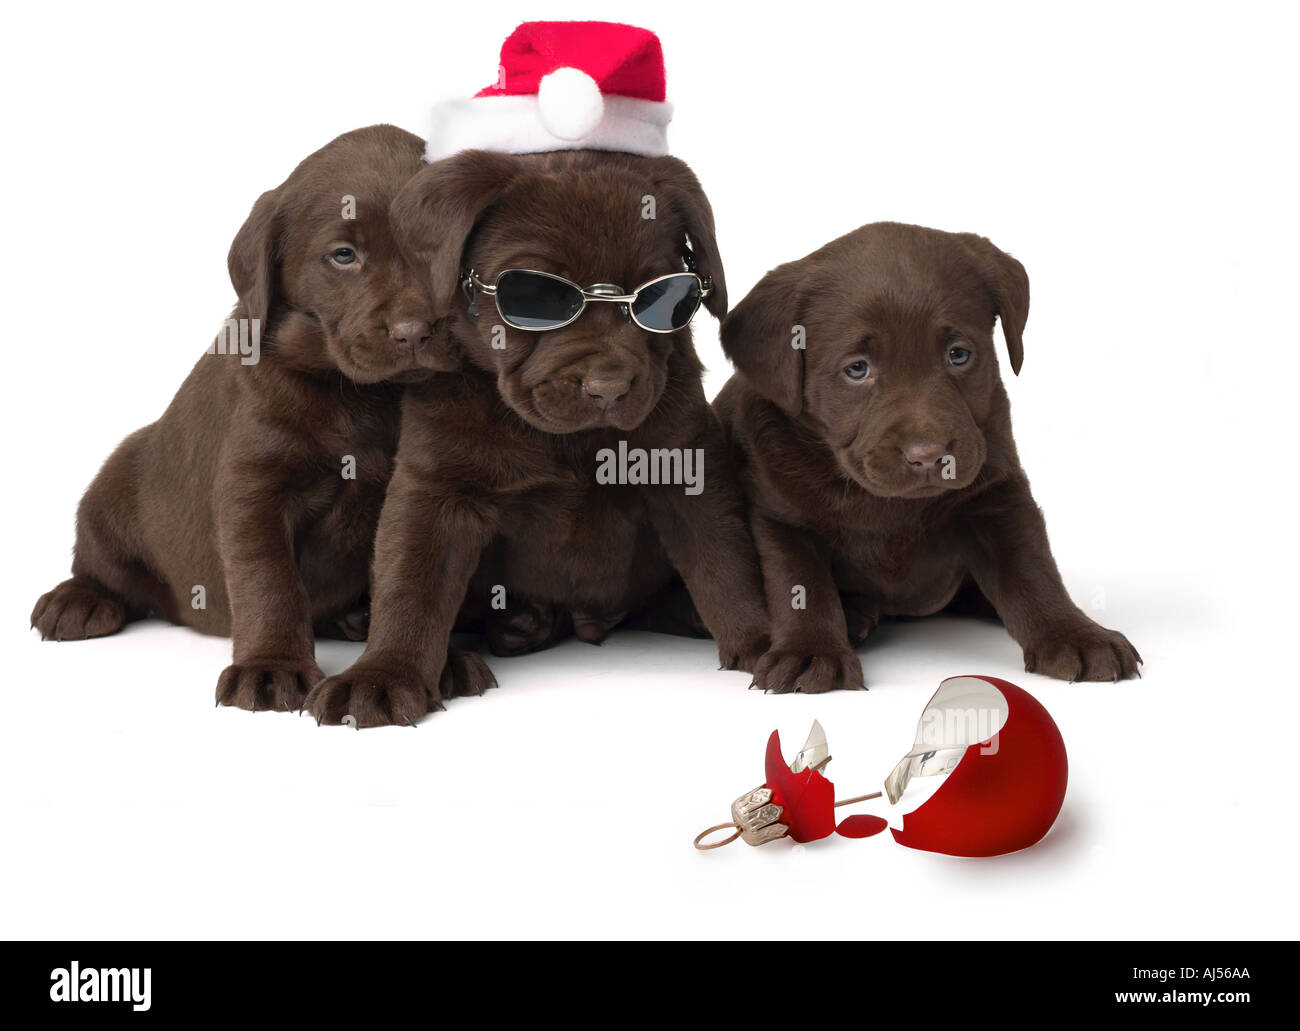 Chocolate Lab Puppies with Broken Christmas Ornament Stock Photo ...